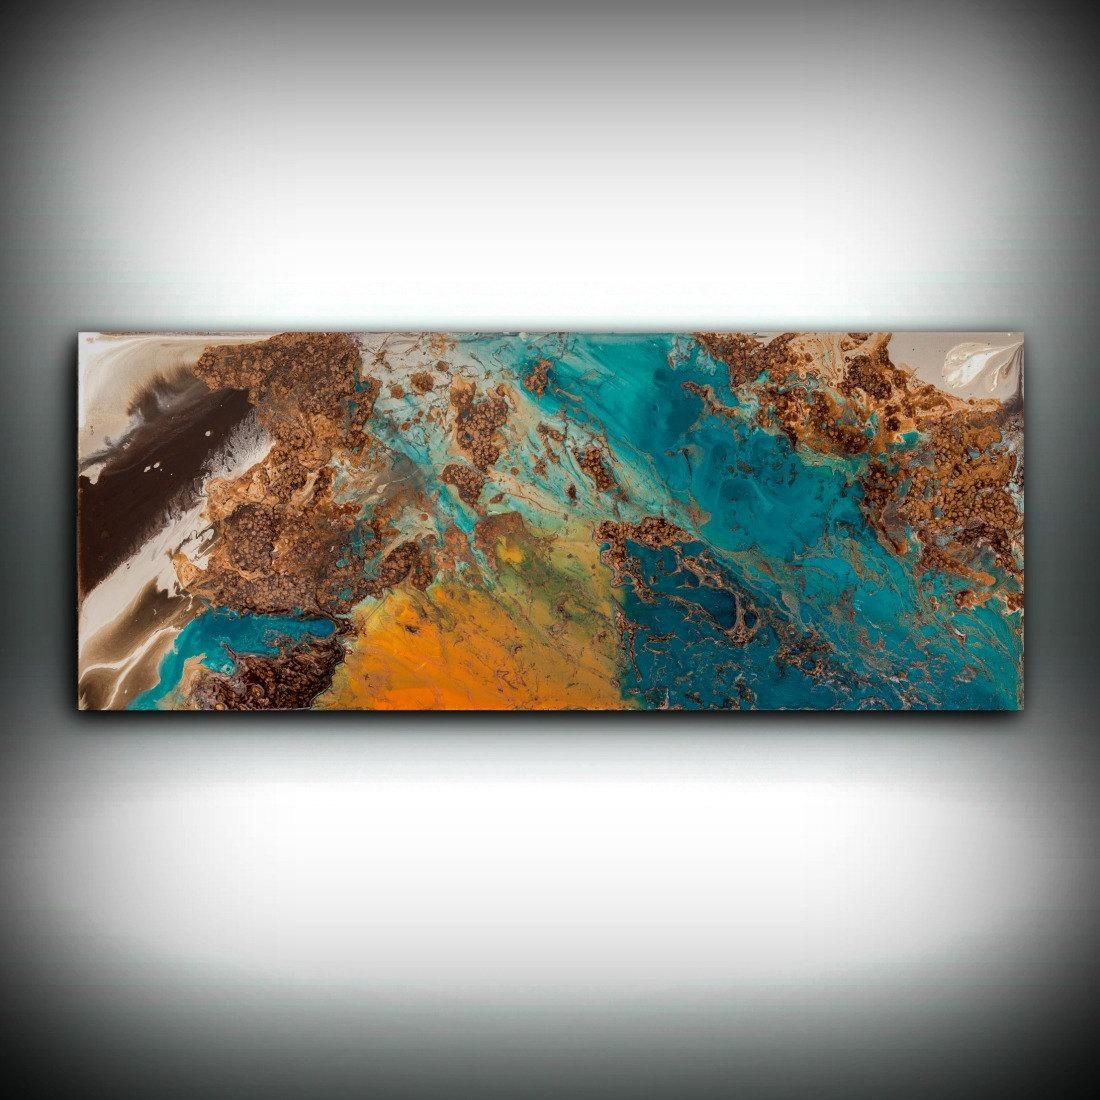 Sale Blue And Copper Art, Wall Art Prints Fine Art Prints Abstract Regarding Orange And Blue Wall Art (Image 13 of 20)